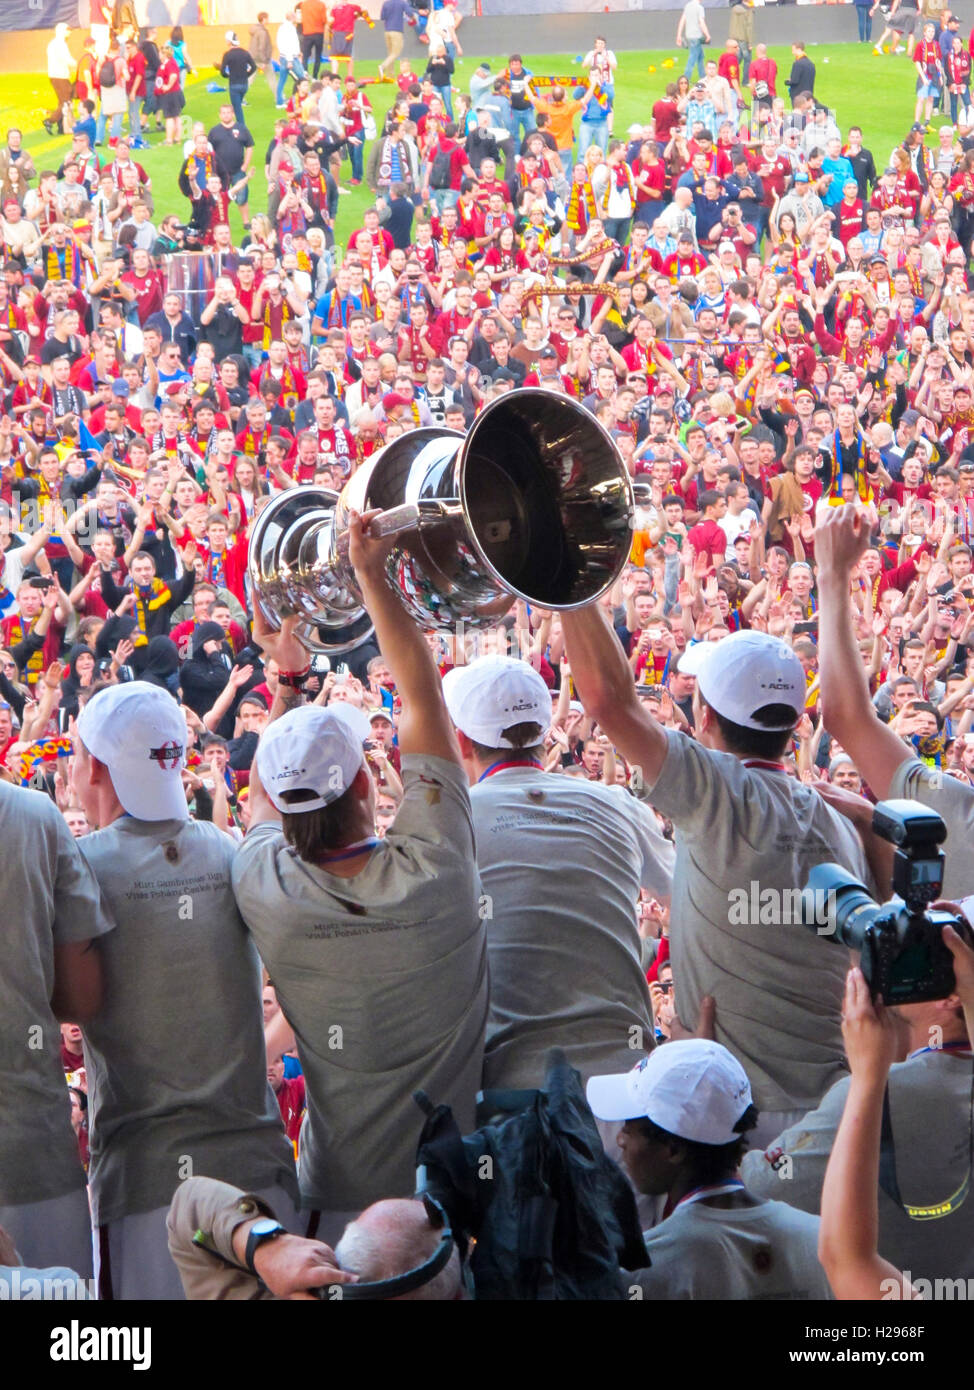 Sparta Prague foootball players team group celebrating the victory and become champion of game while holding win - Stock Image